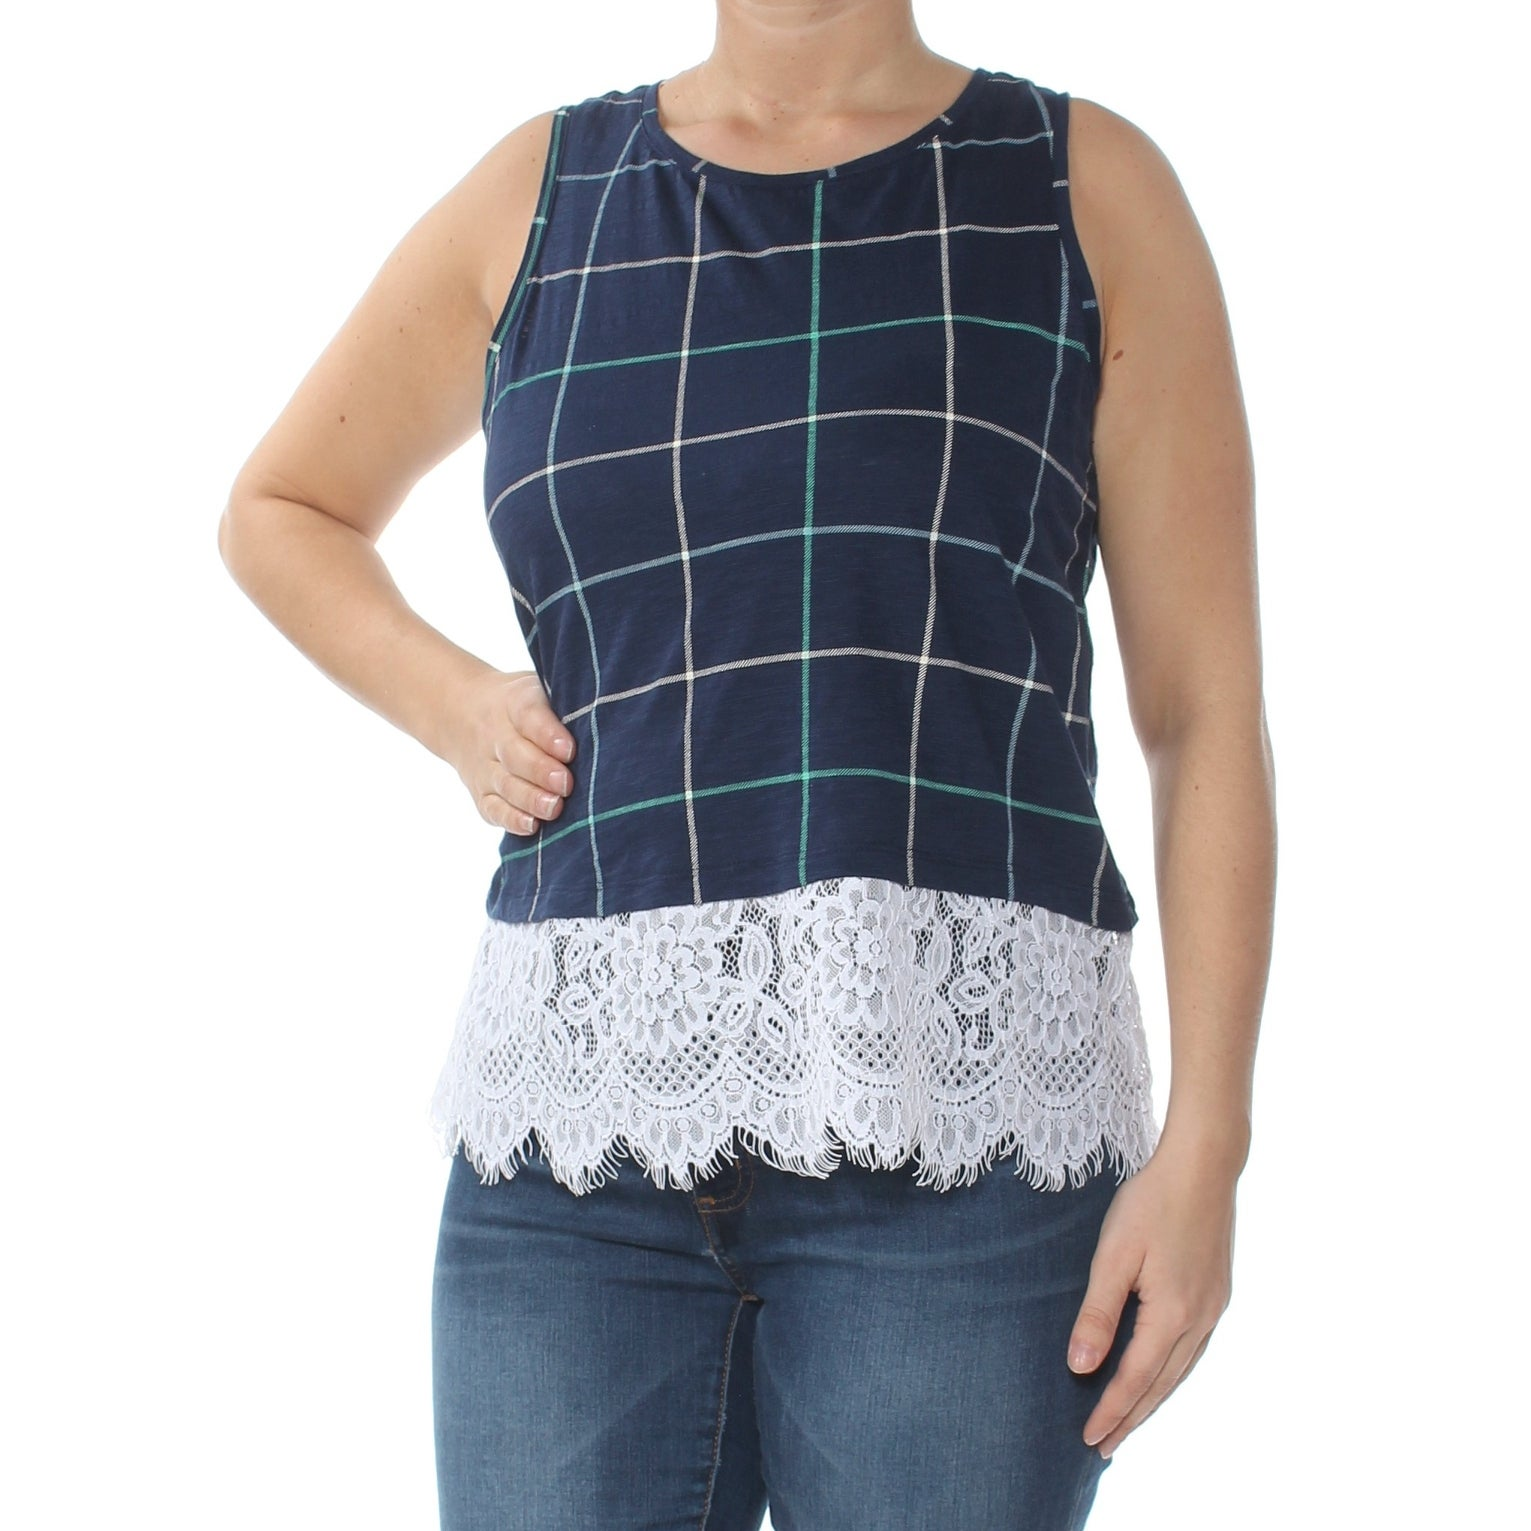 6f44e02fa332 Shop MAISON JULES Womens Navy Lace Trim Tank Printed Sleeveless Jewel Neck  Top Size: M - On Sale - Free Shipping On Orders Over $45 - Overstock -  27795606